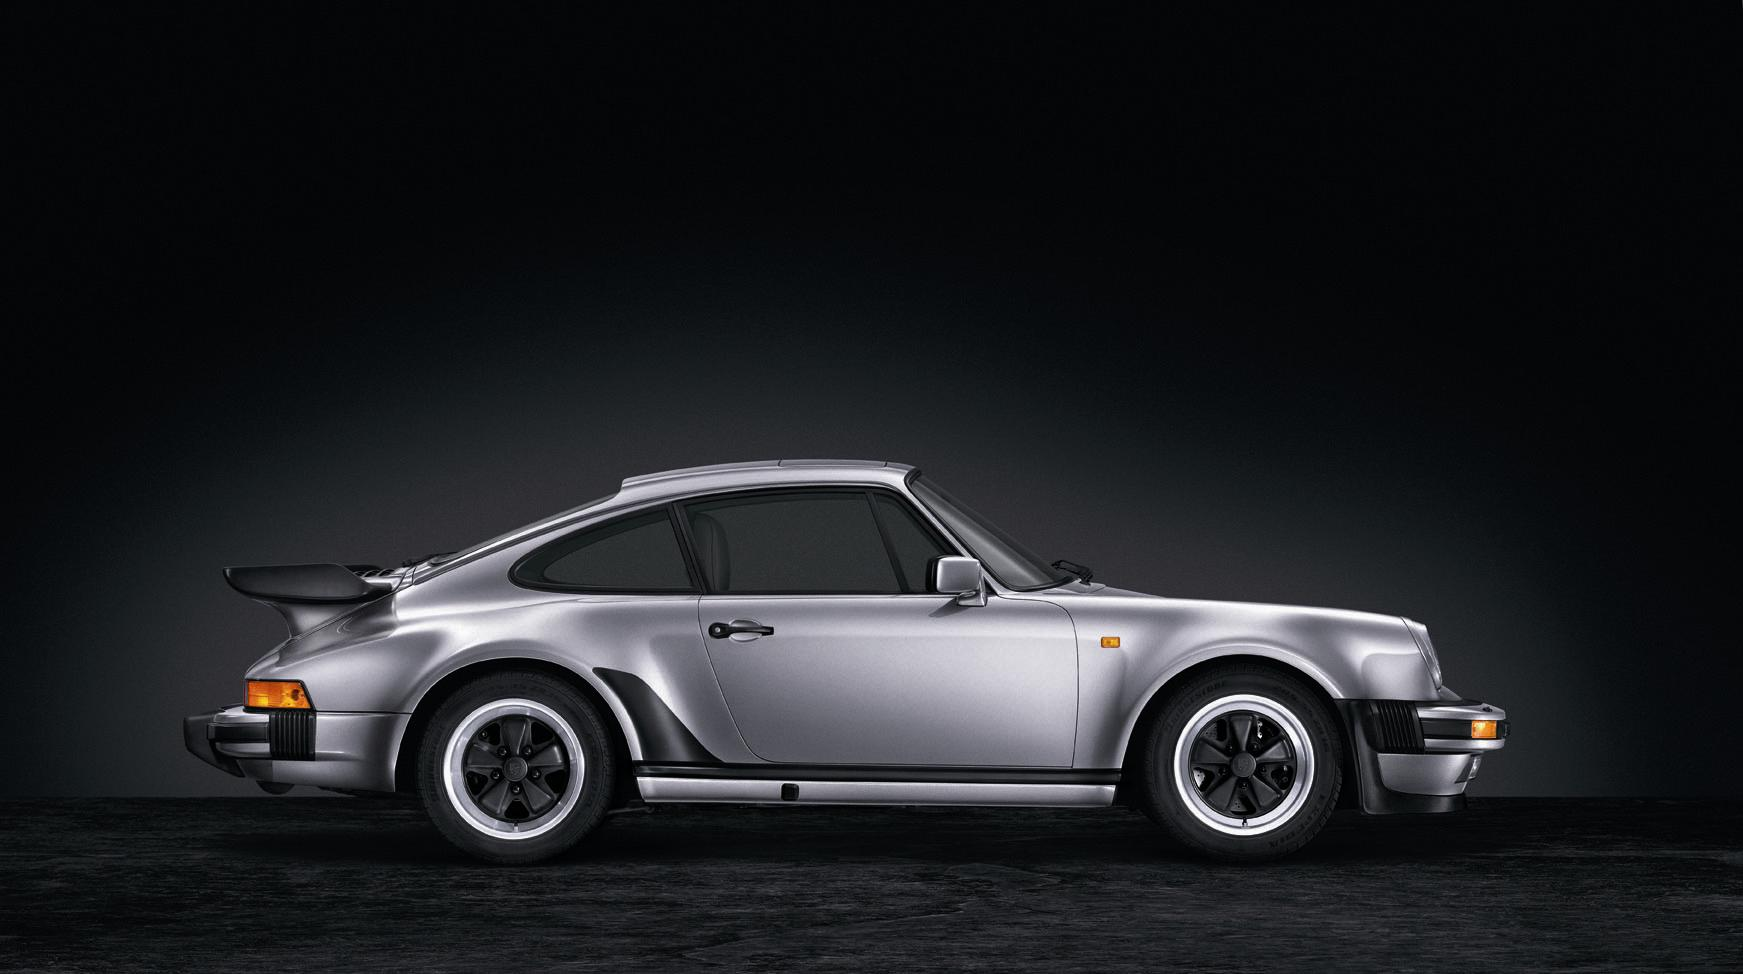 1975 1989 Porsche 911 930 Top Speed